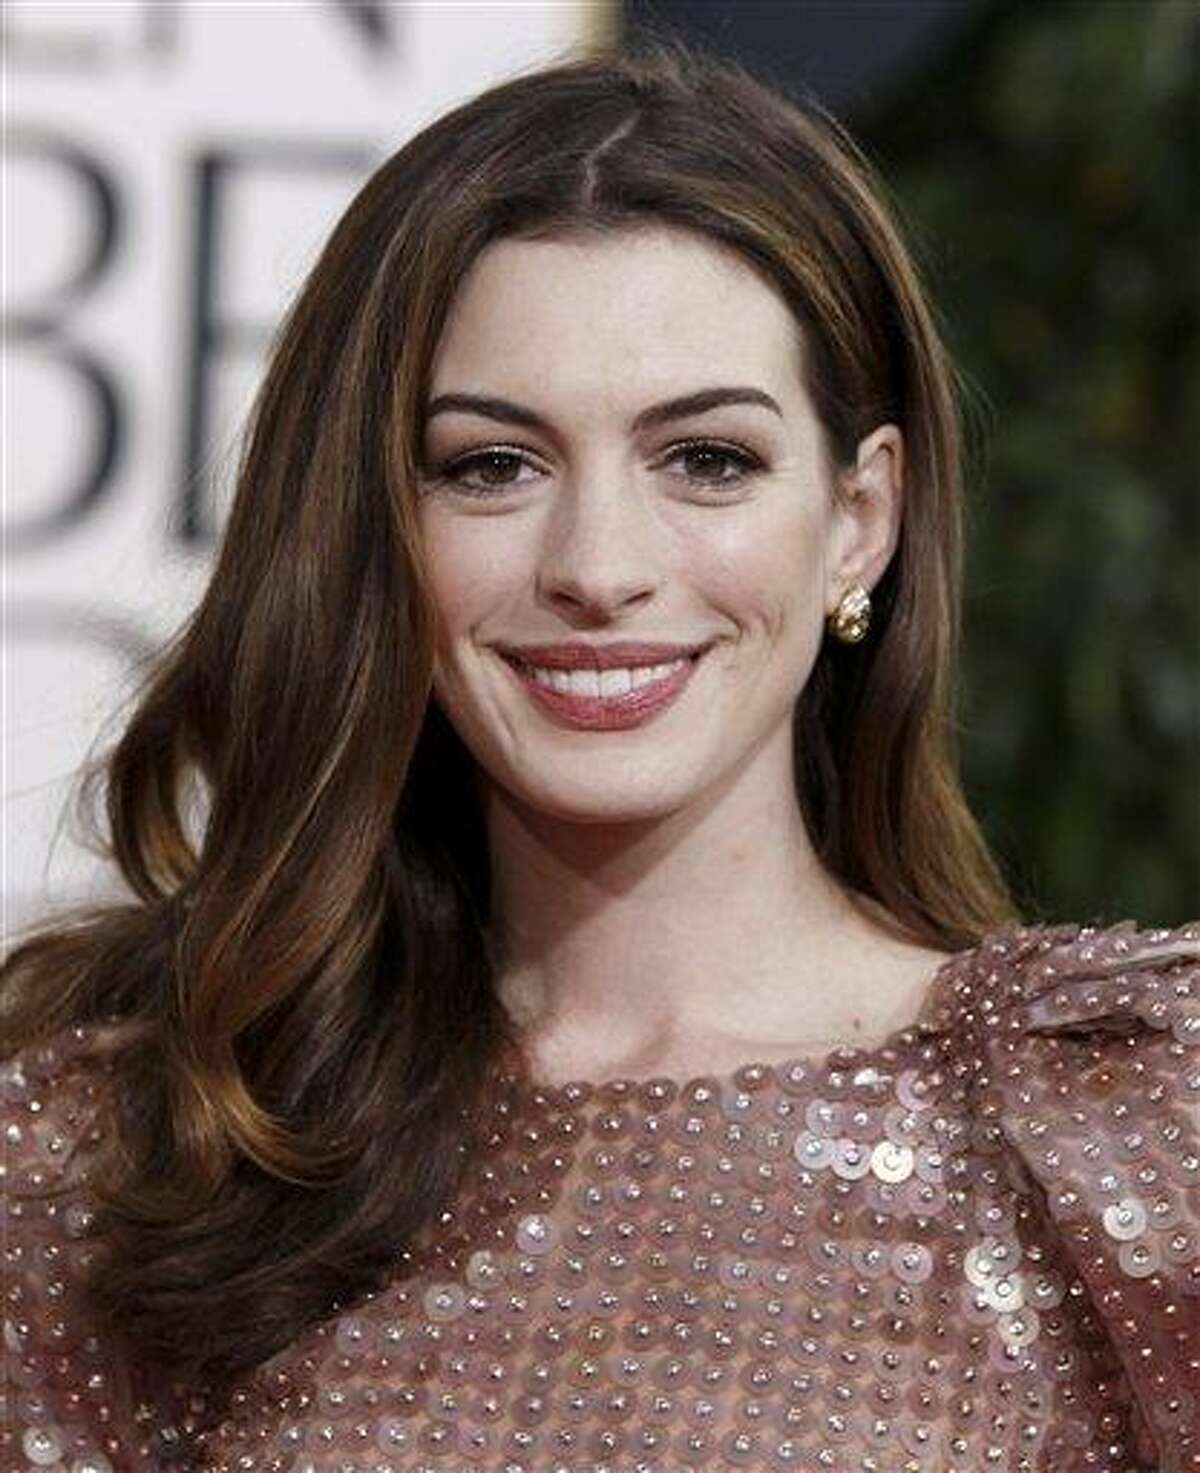 """FILE - In this Jan. 16, 2011 file photo, Anne Hathaway arrives at the Golden Globe Awards in Beverly Hills, Calif. Warner Bros. on Wednesday, Jan. 19 announced that Hathaway will play the role of Selina Kyle and her alter ego, Catwoman, in """"The Dark Knight Rises,"""" Christopher Nolan's latest film in the Batman saga. (AP Photo/Matt Sayles, File)"""